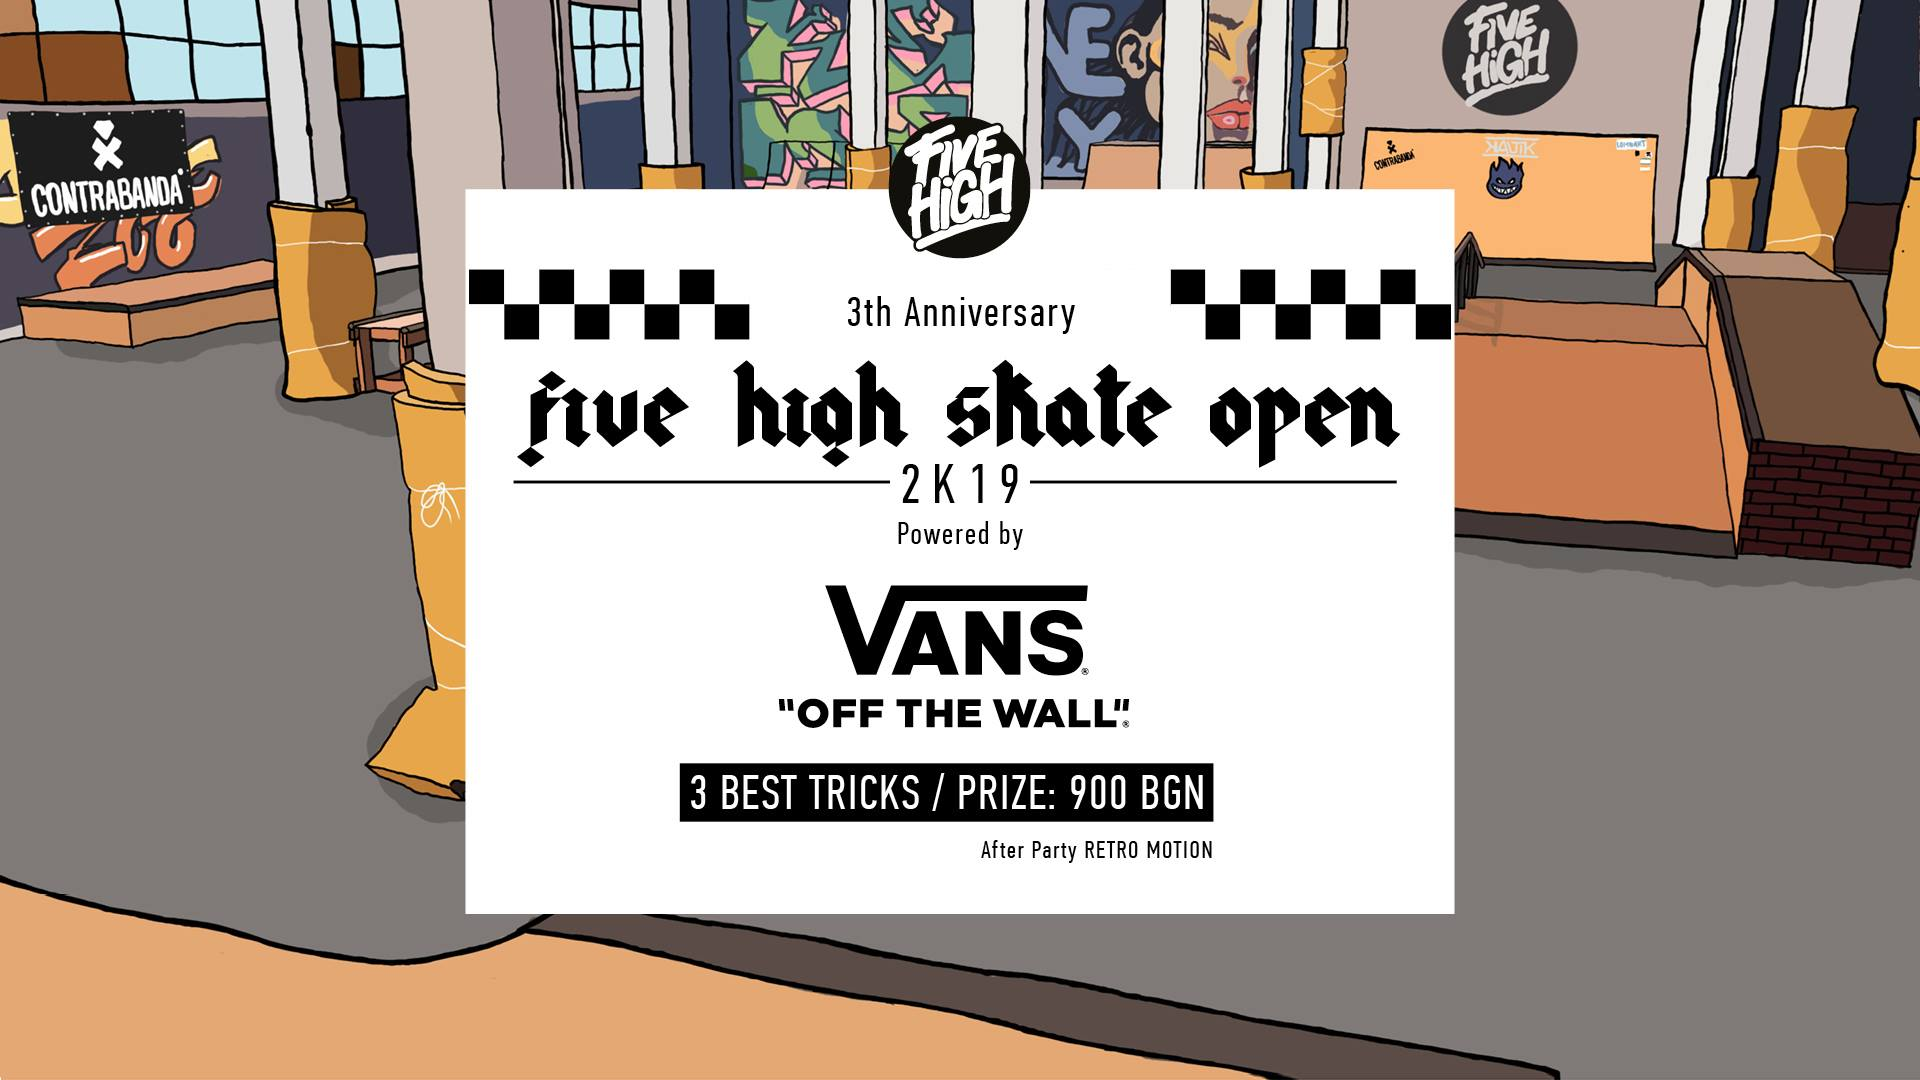 Five High SKATE OPEN 2K19